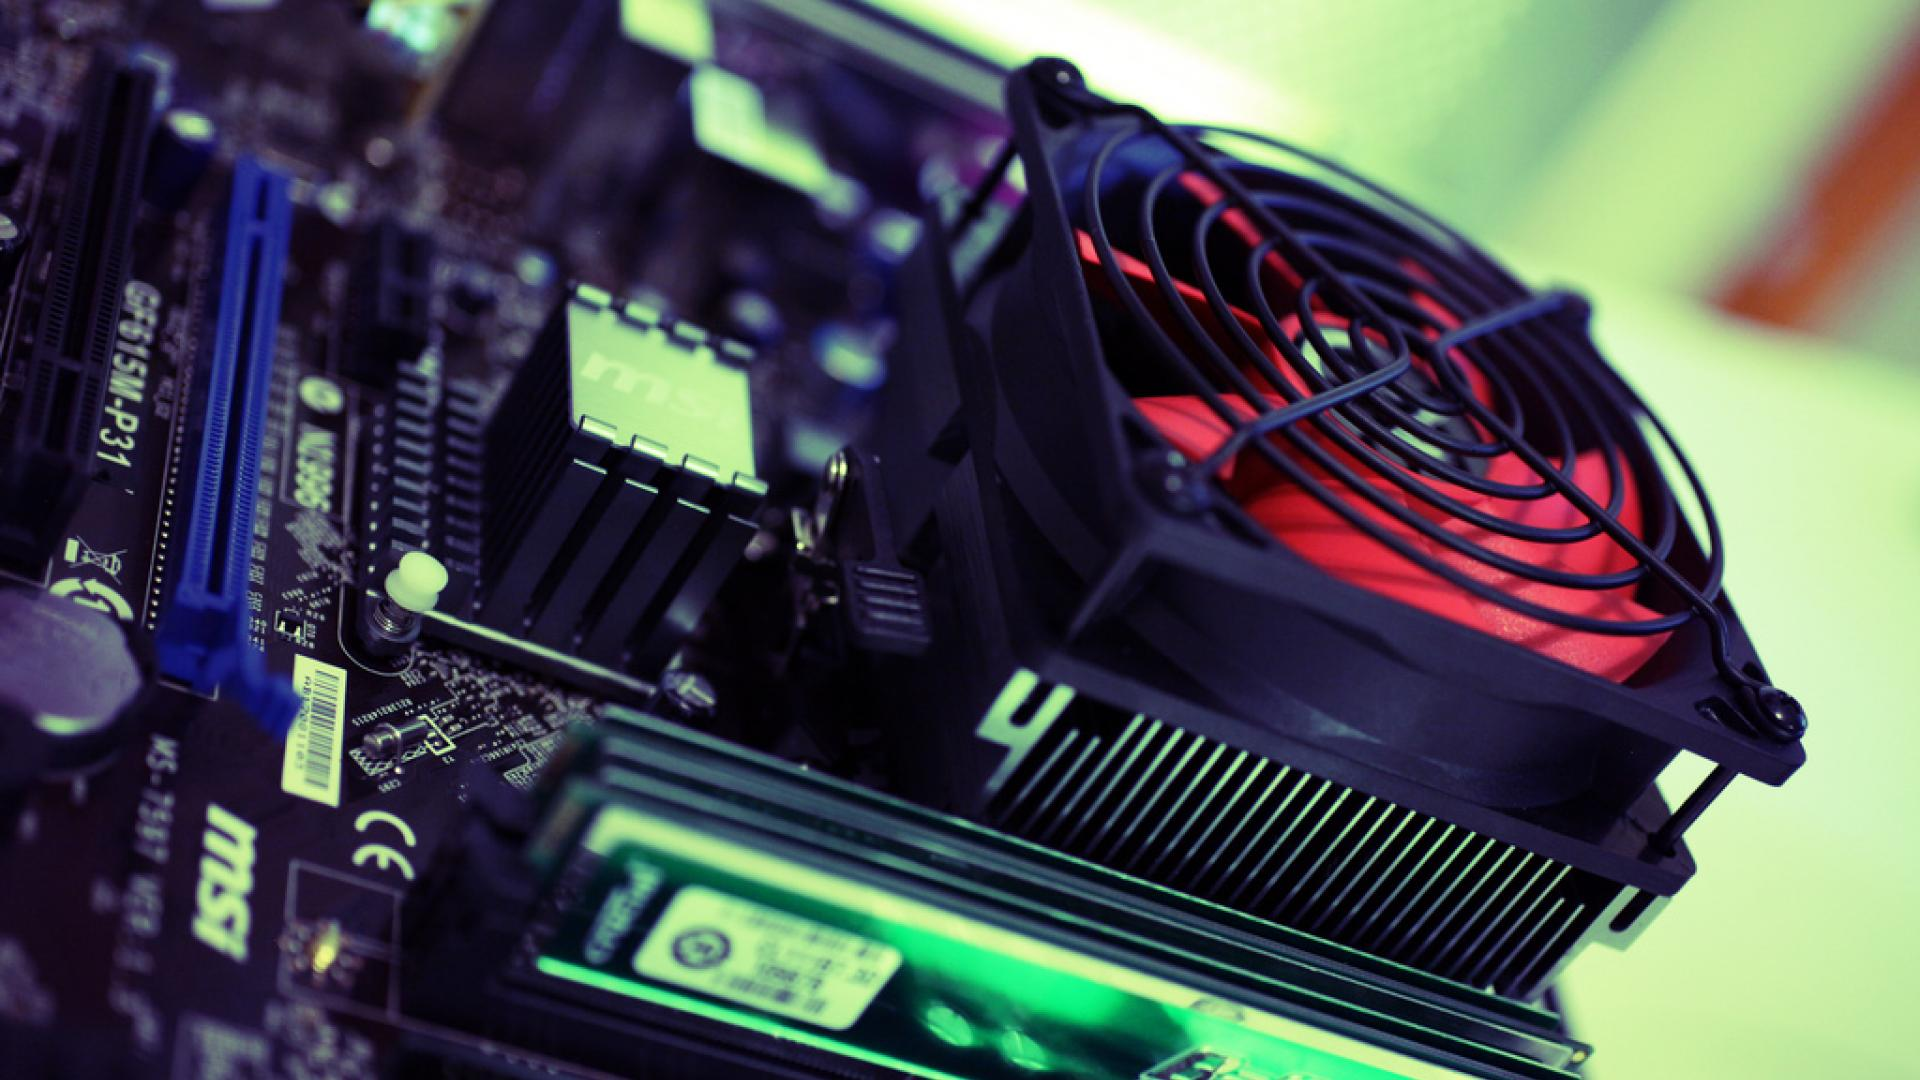 computers motherboards best widescreen background awesome HD Wallpaper 1920x1080